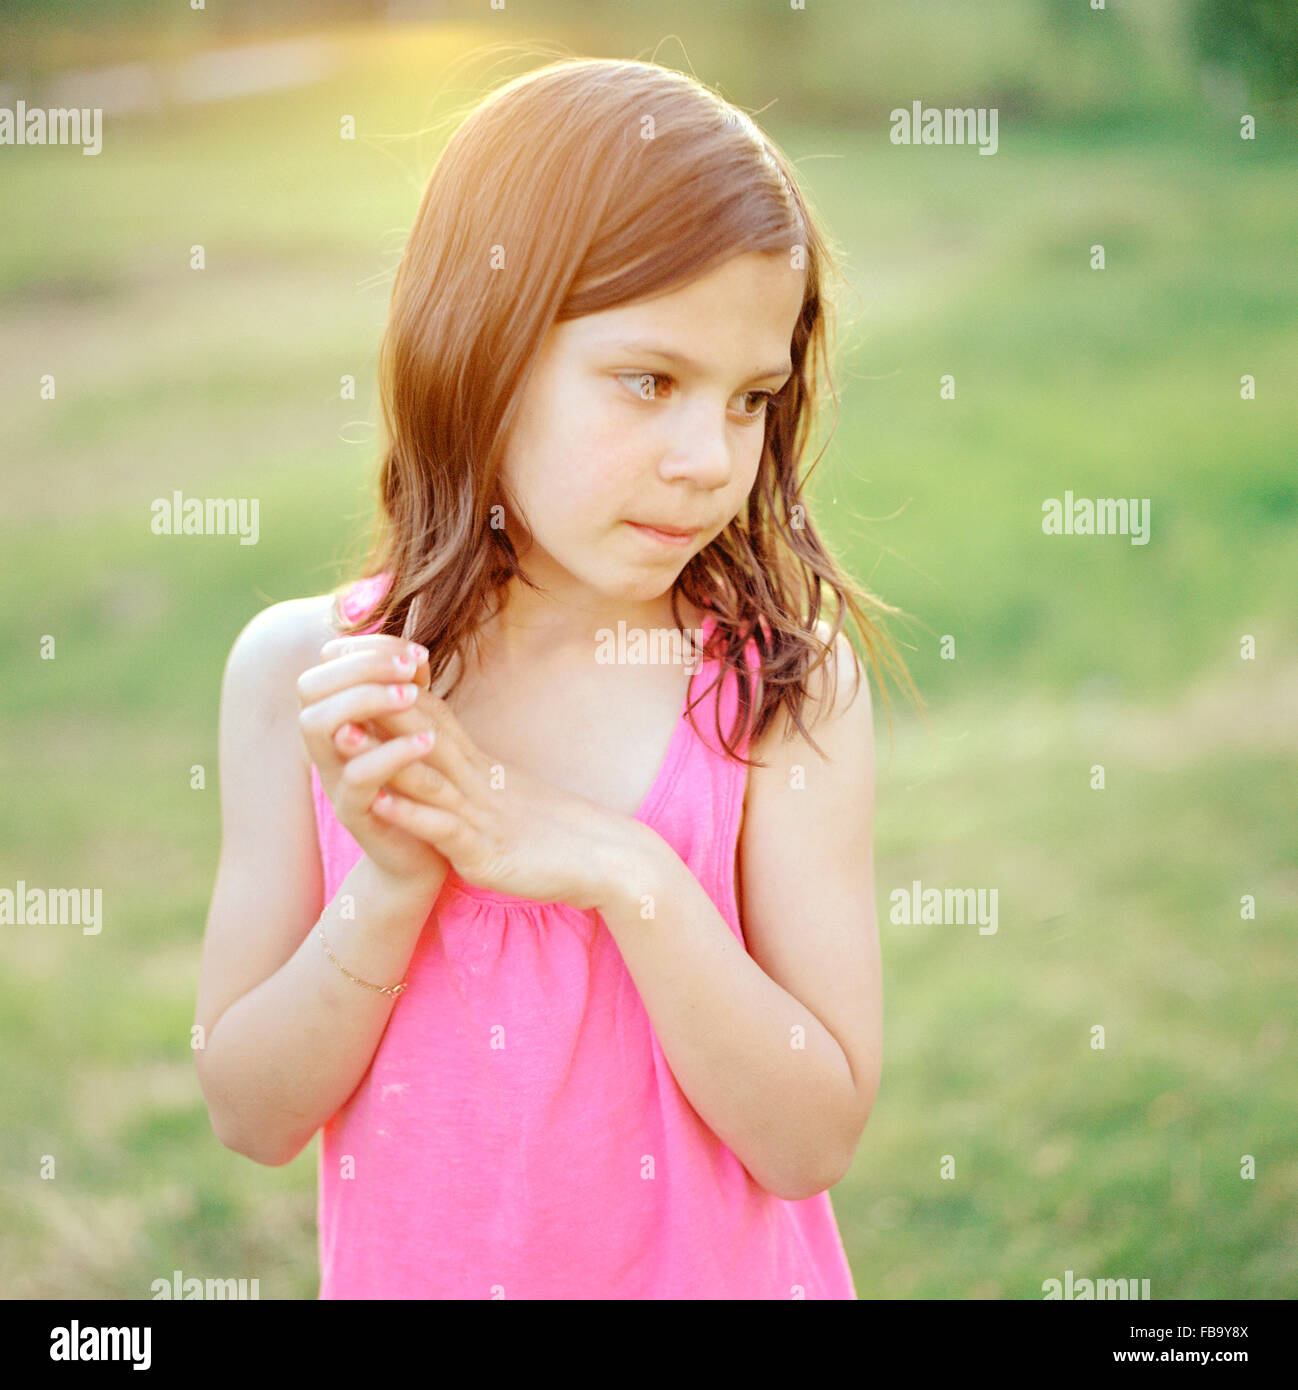 Sweden, Vastmanland, Girl (6-7) wearing pink top - Stock Image